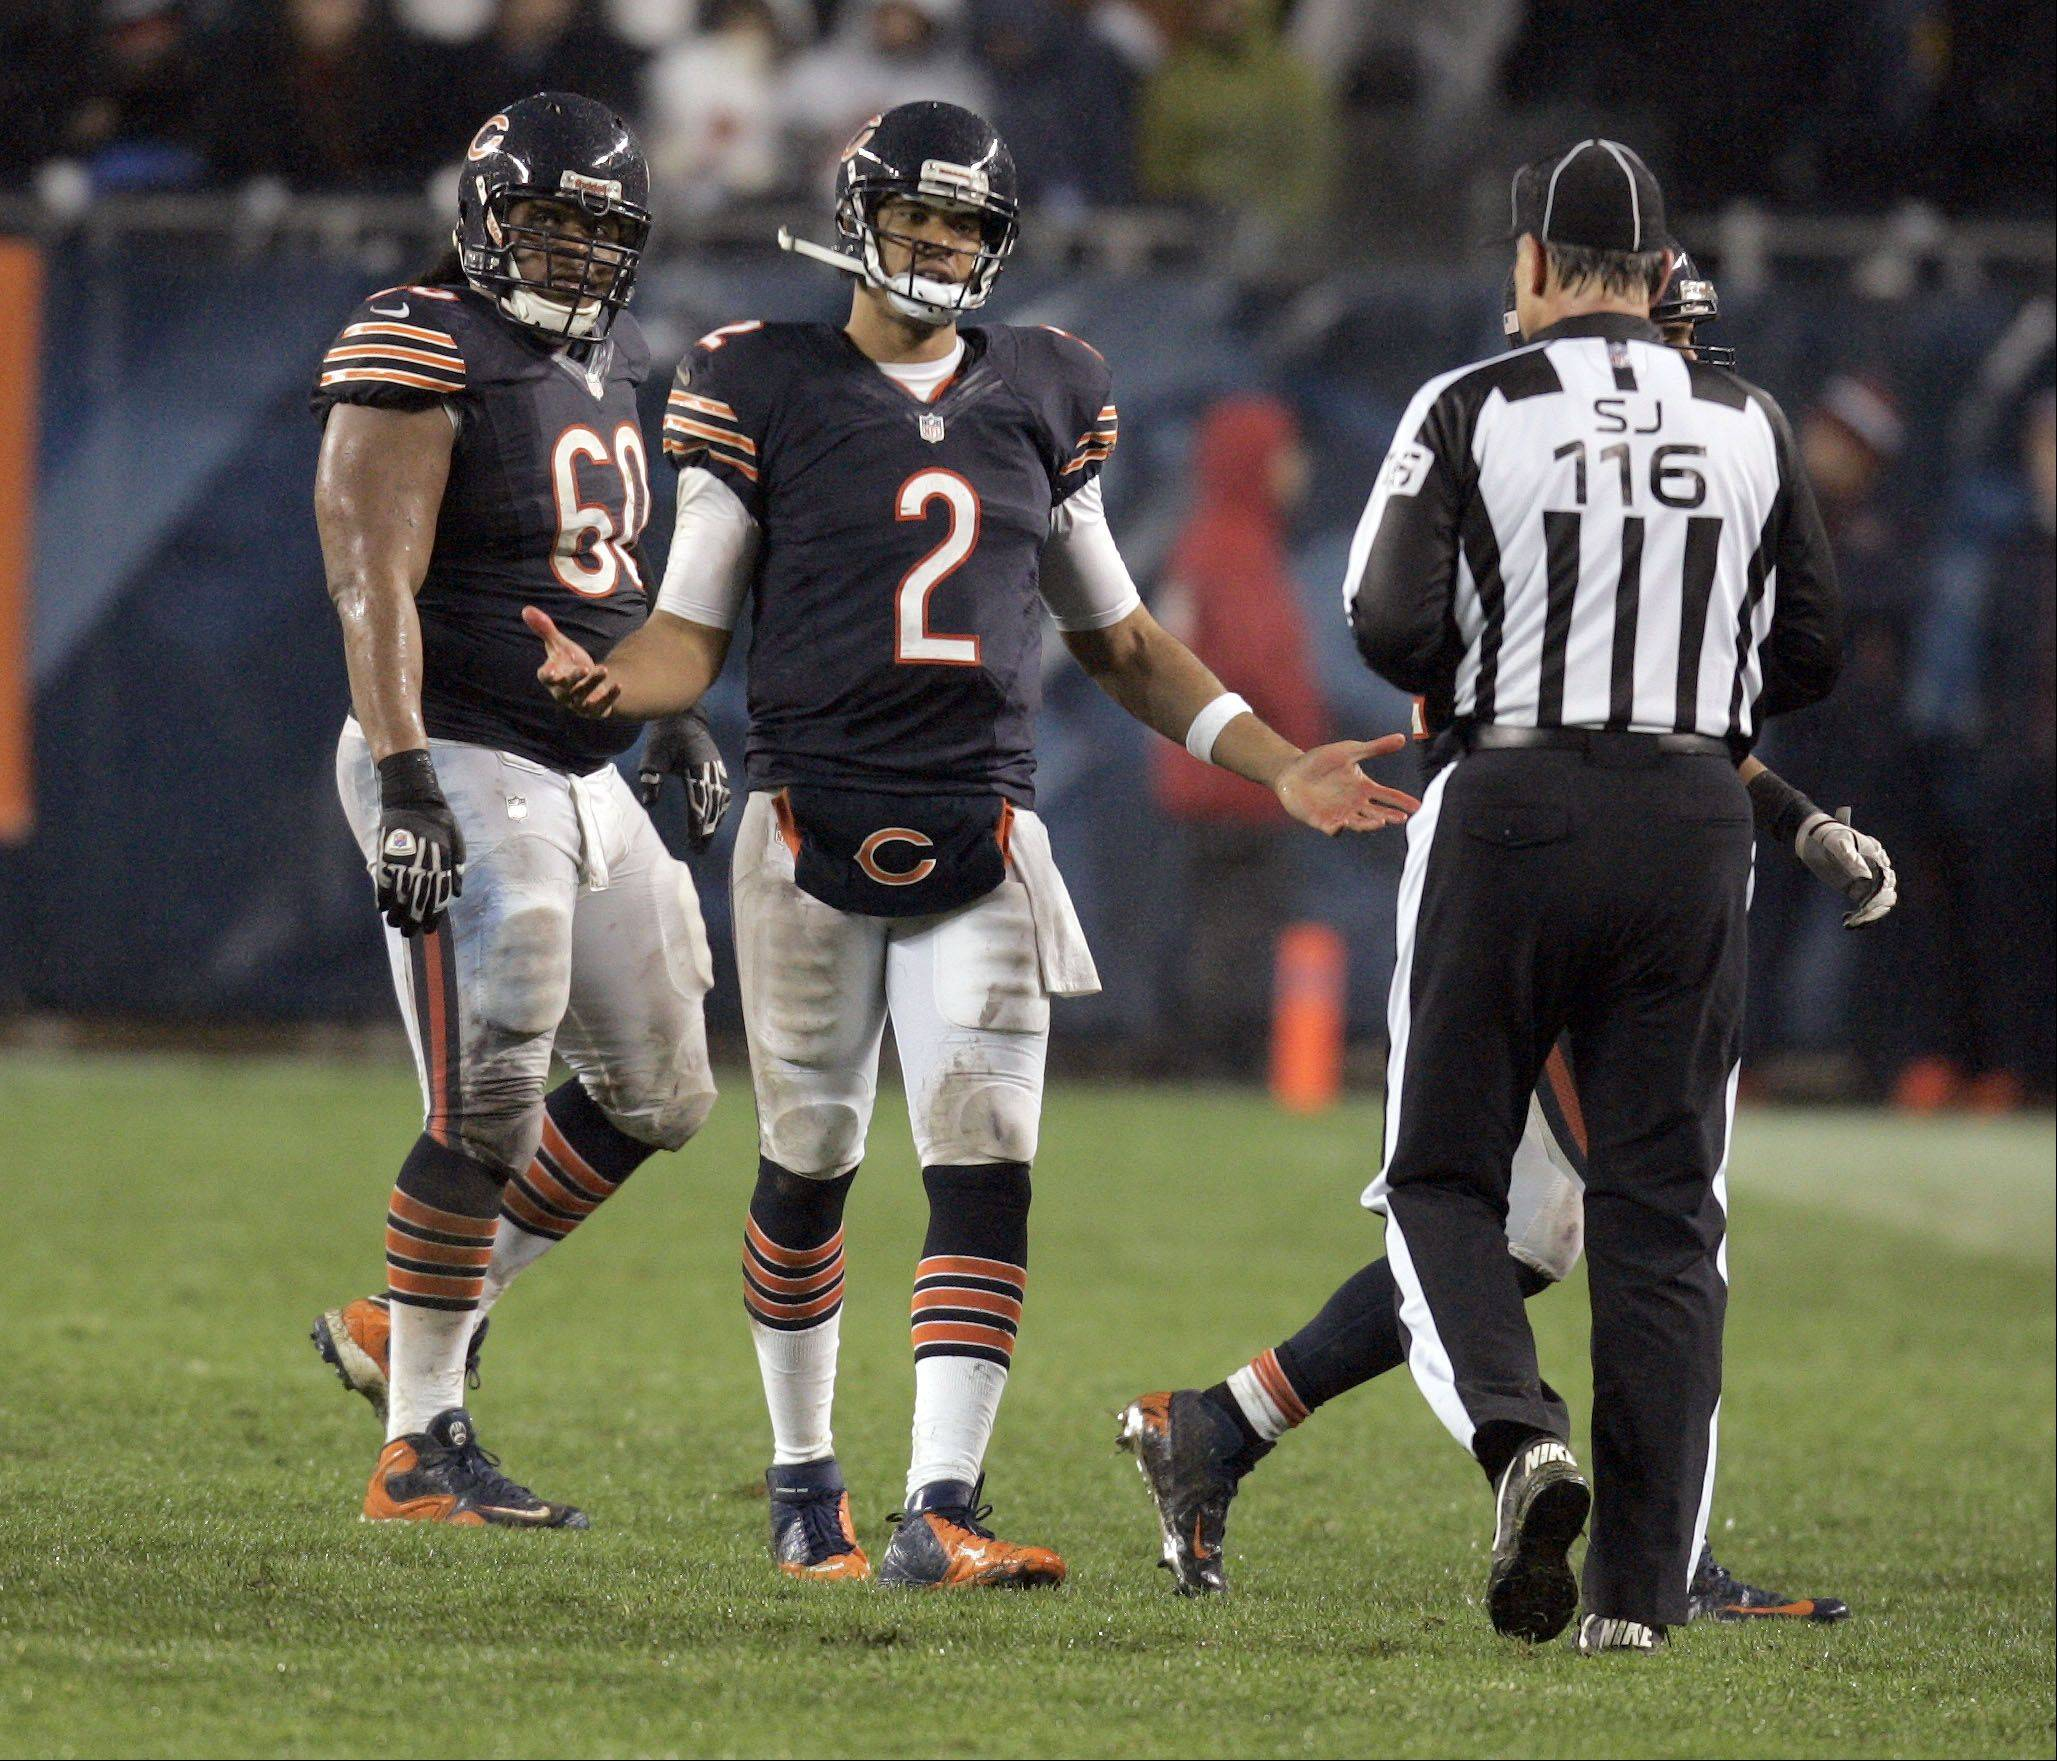 Chicago Bears quarterback Jason Campbell (2) talks to one of the officials late in the fourth quarter during the game.